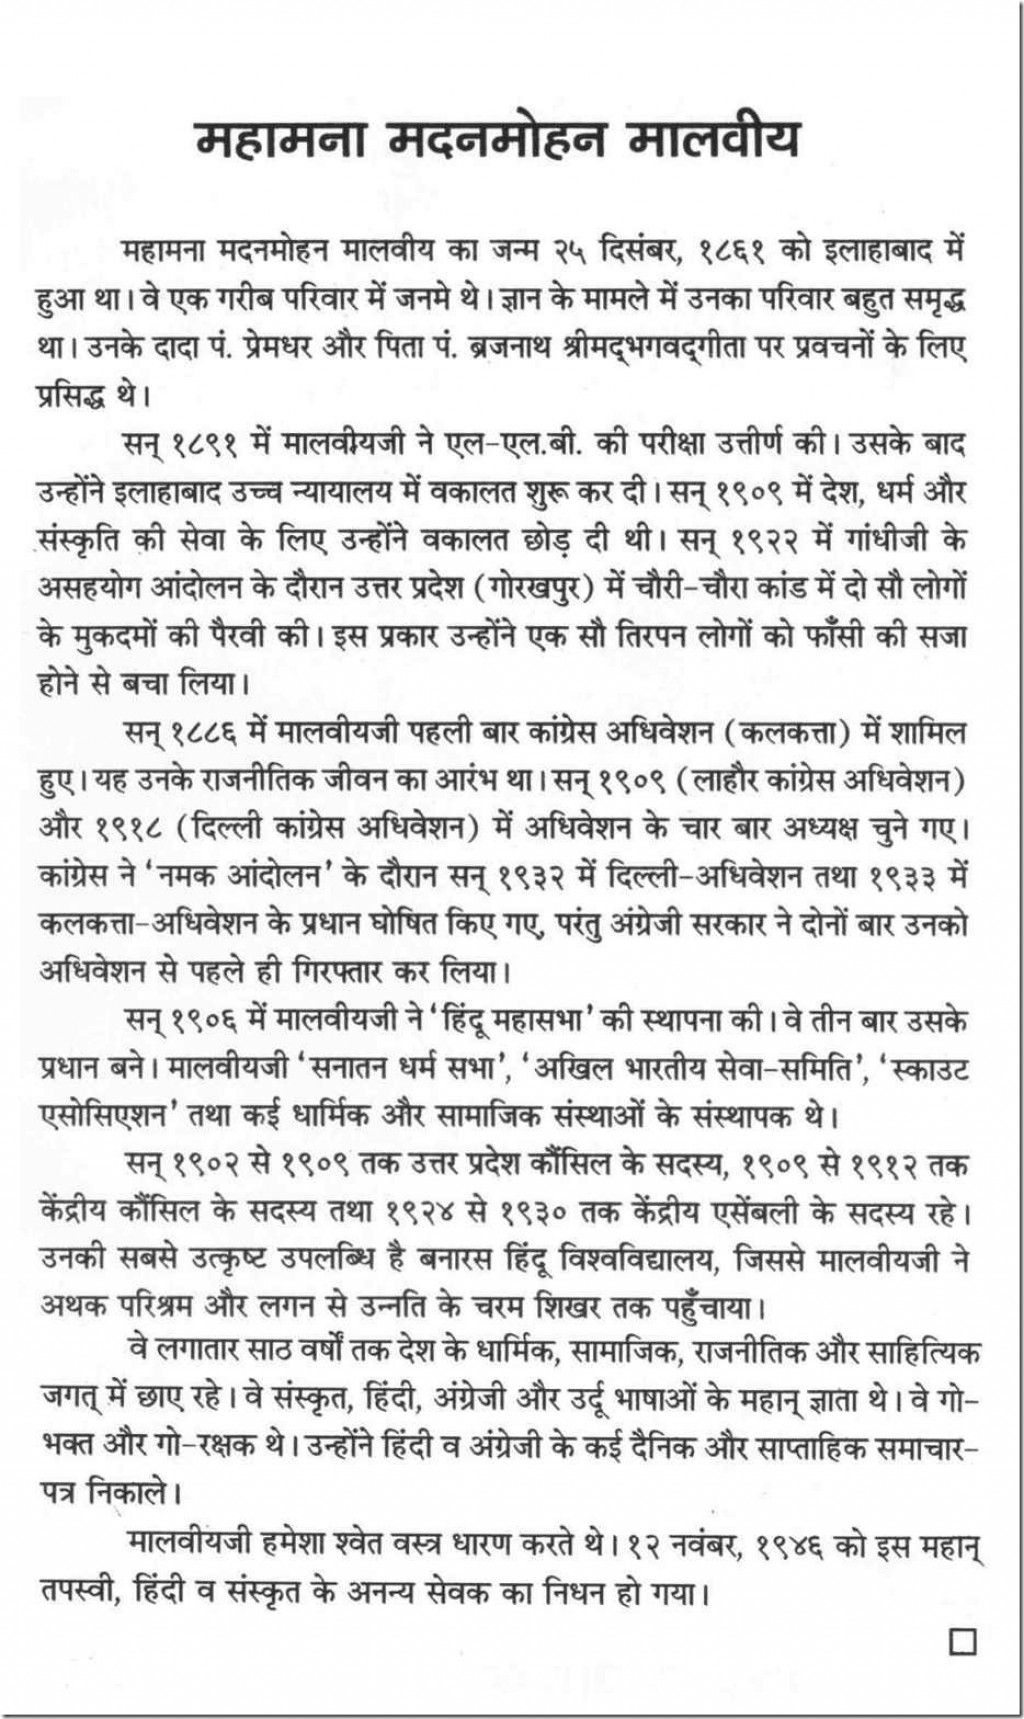 002 10072 Thumb Essay Example Lokmanya Incredible Tilak Aste Tar In Marathi On Bal Gangadhar Hindi Pdf Large